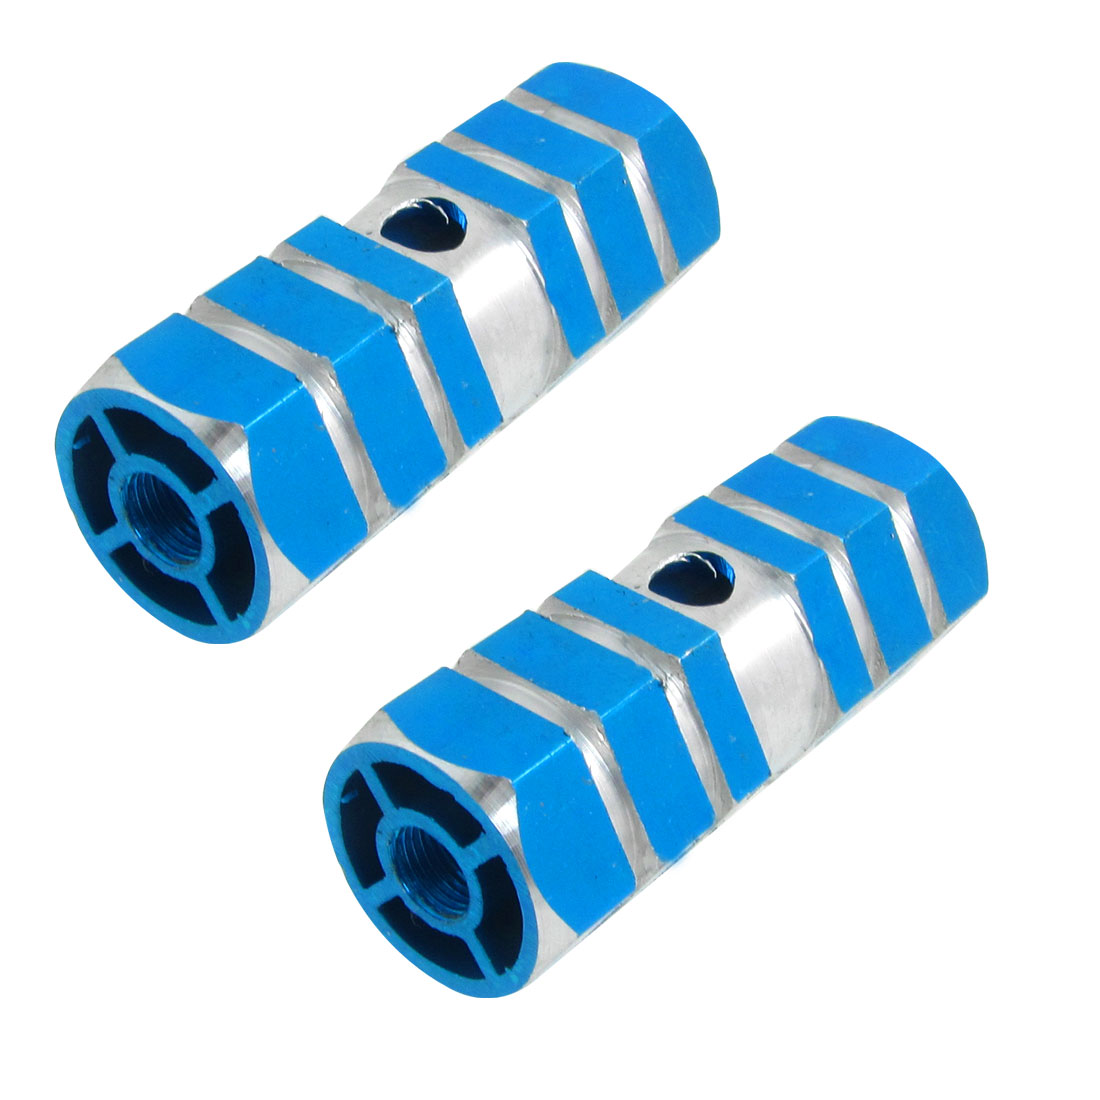 Sky Blue Aluminum Nonslip Bicycle Front Rear Axle Foot Pegs Pair